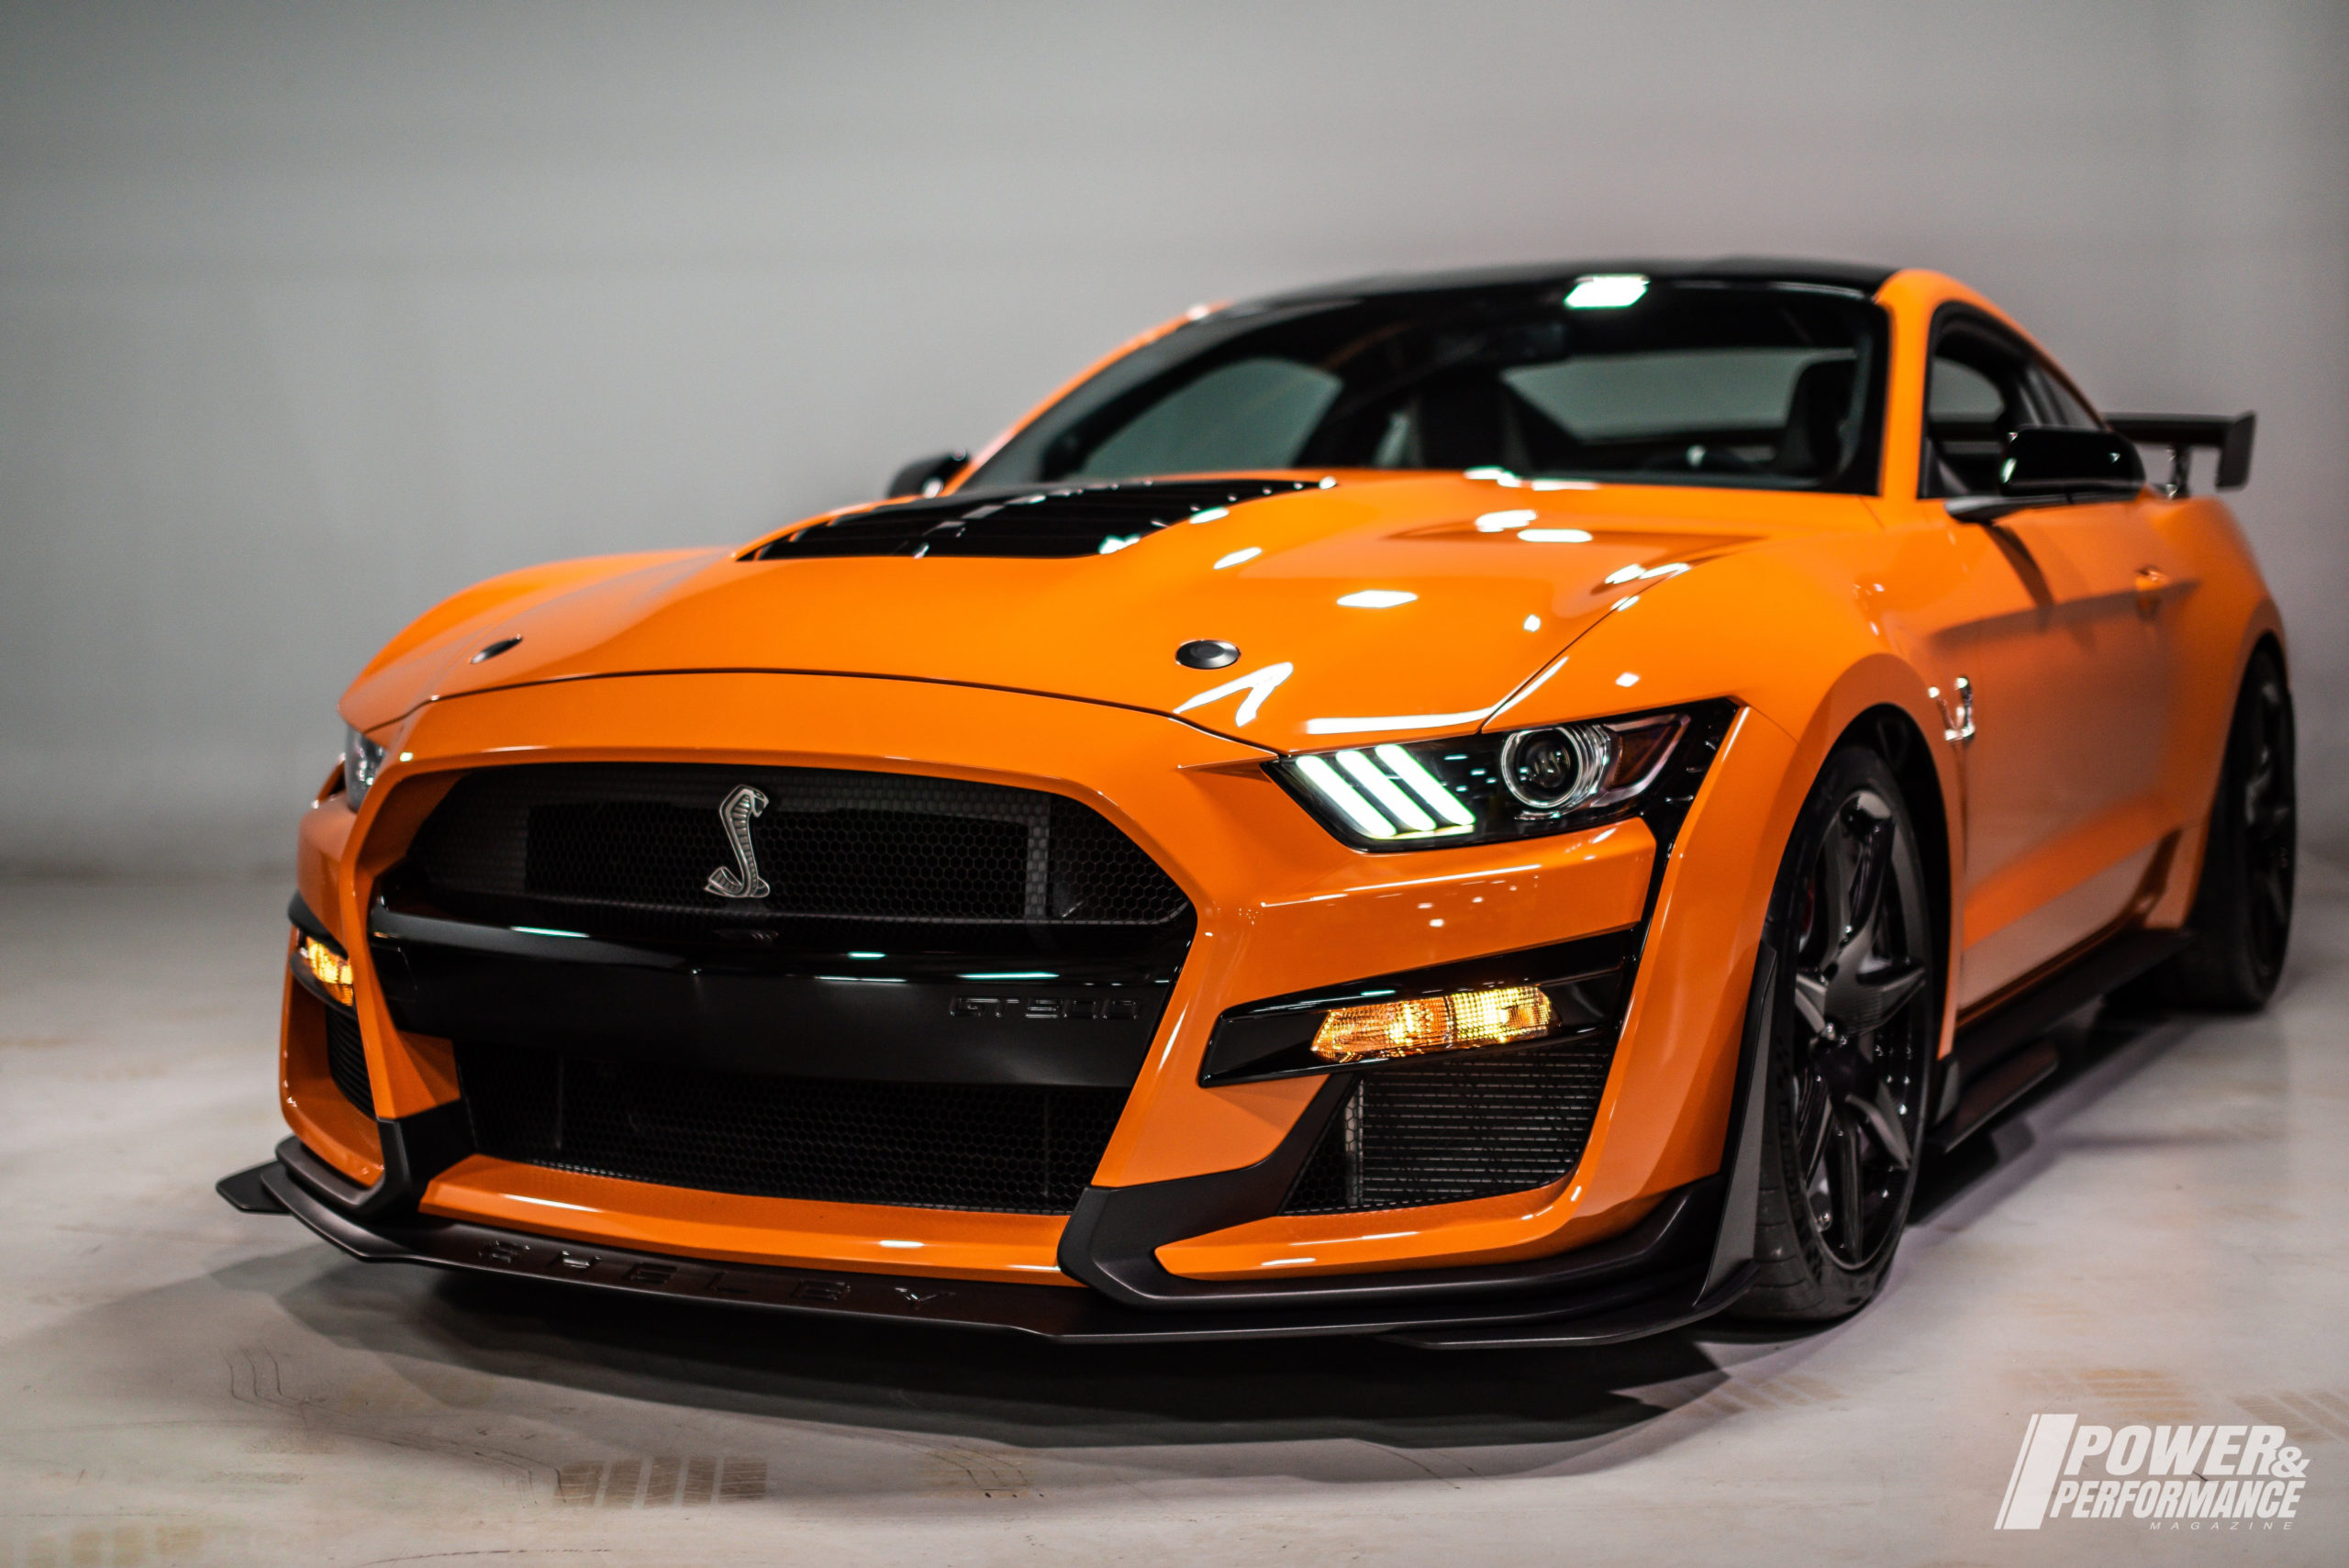 P P Exclusive 2020 Ford Mustang Shelby GT500 In Twister